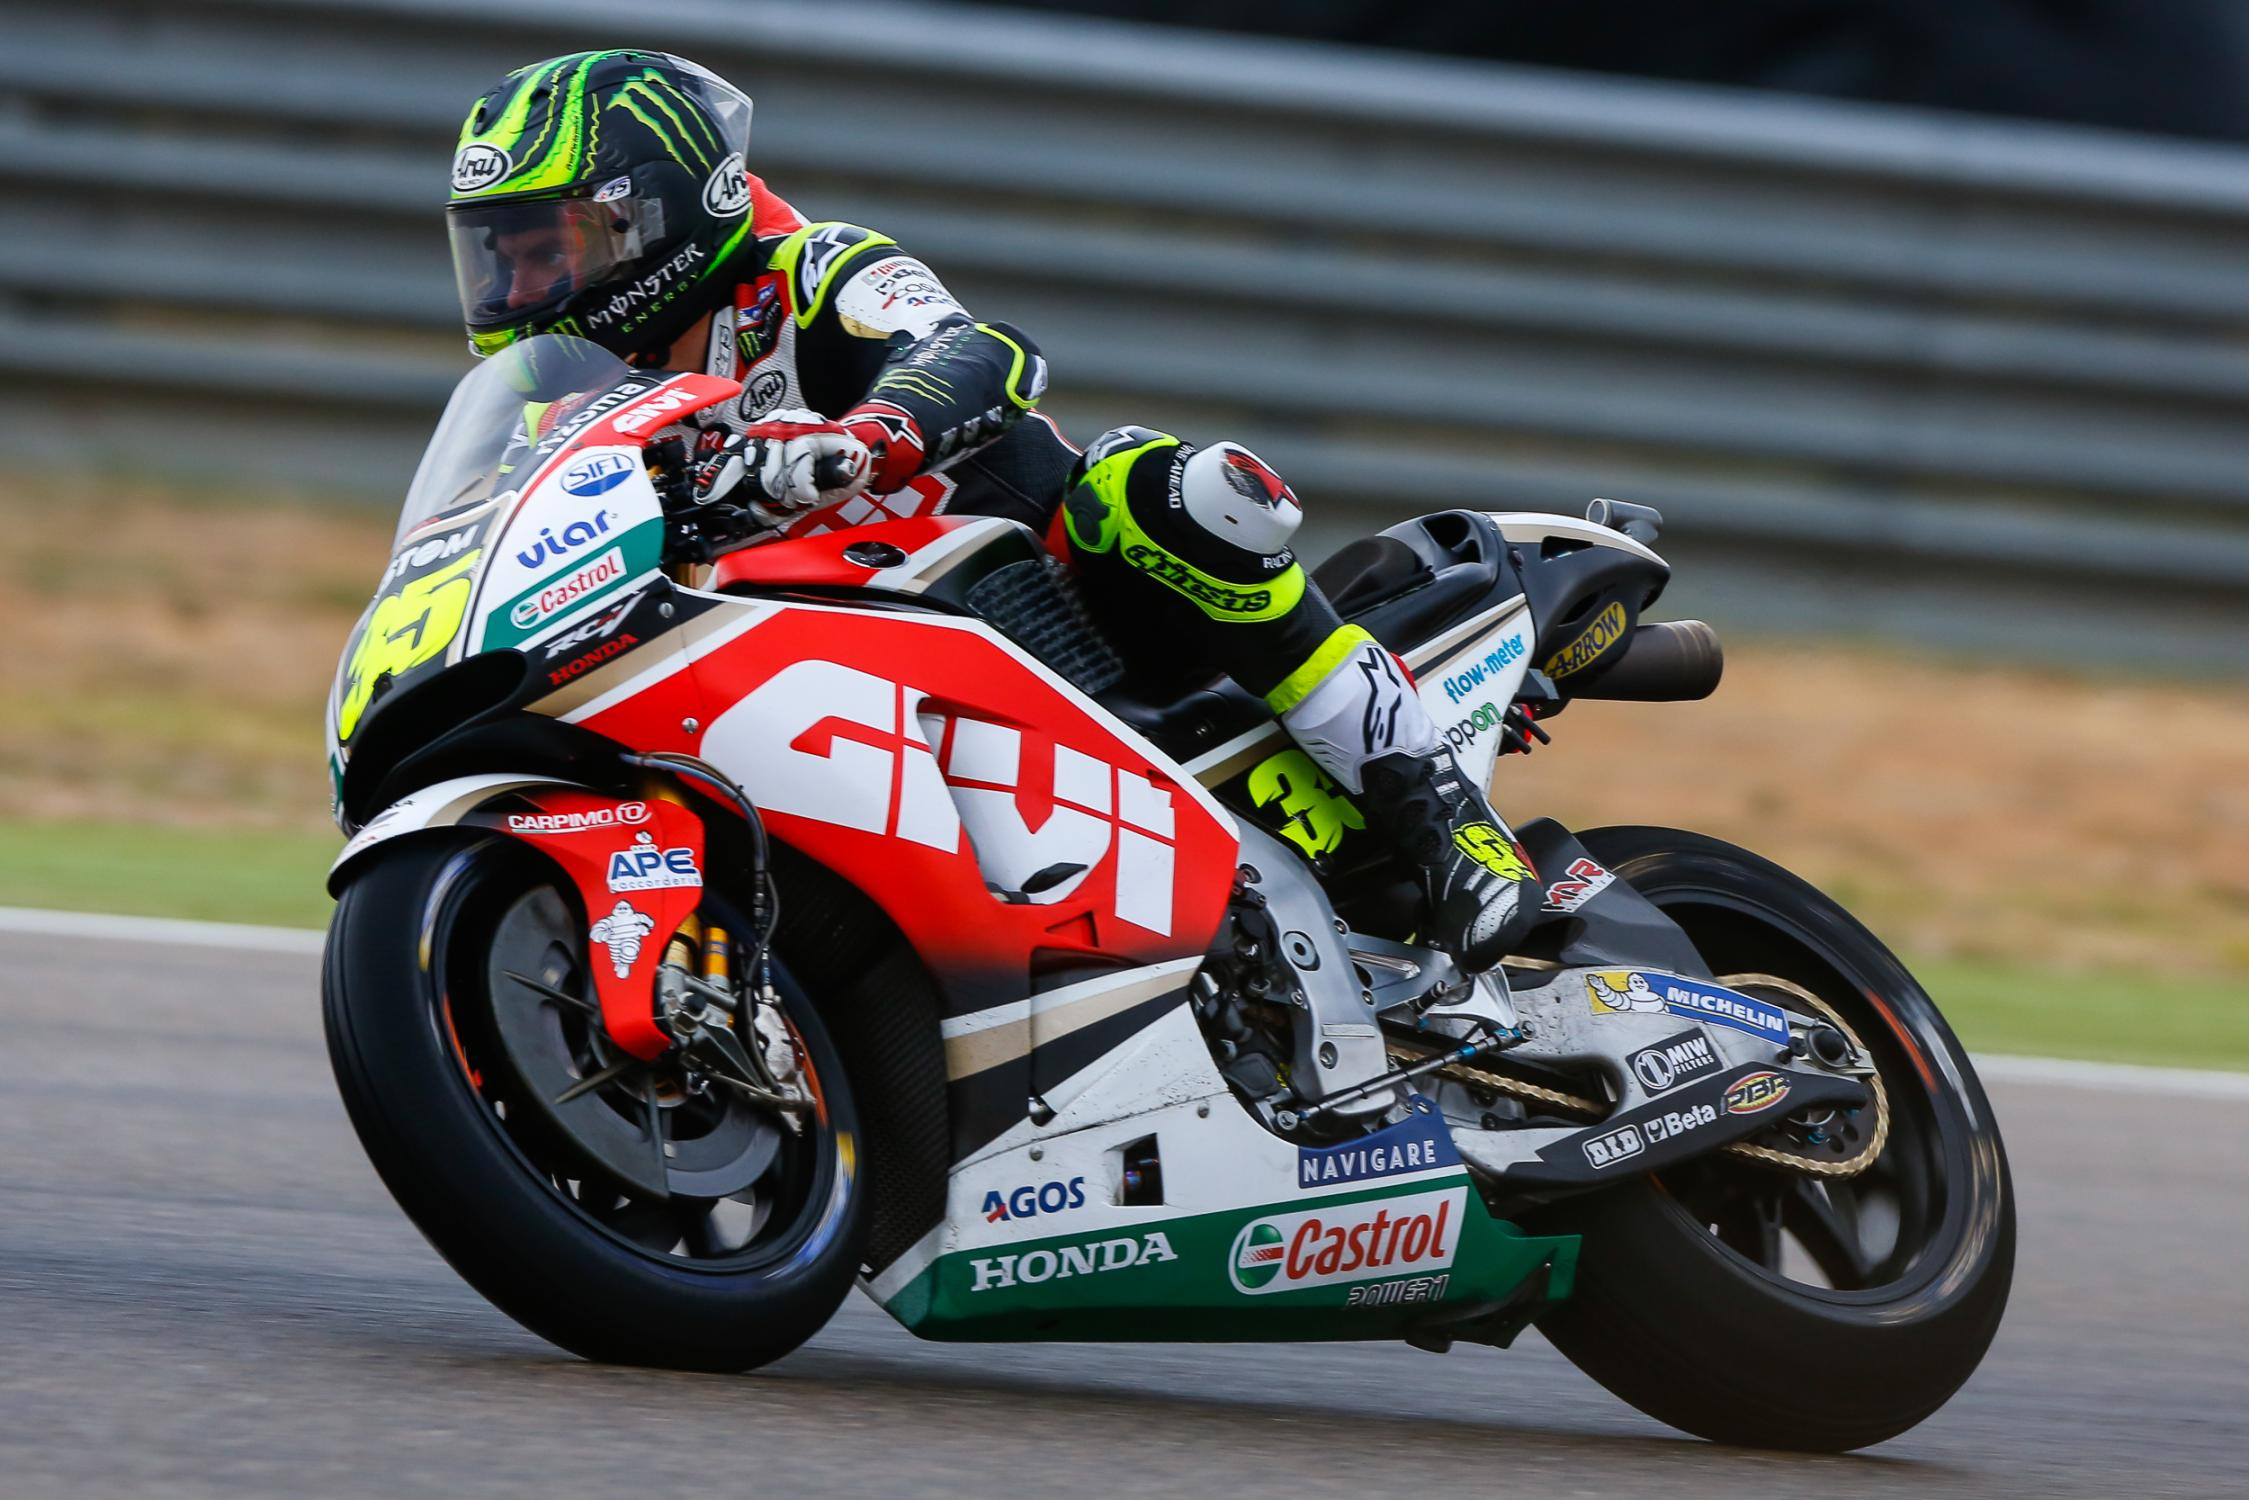 35-cal-crutchlow-eng_gp_5126.gallery_full_top_fullscreen.jpg